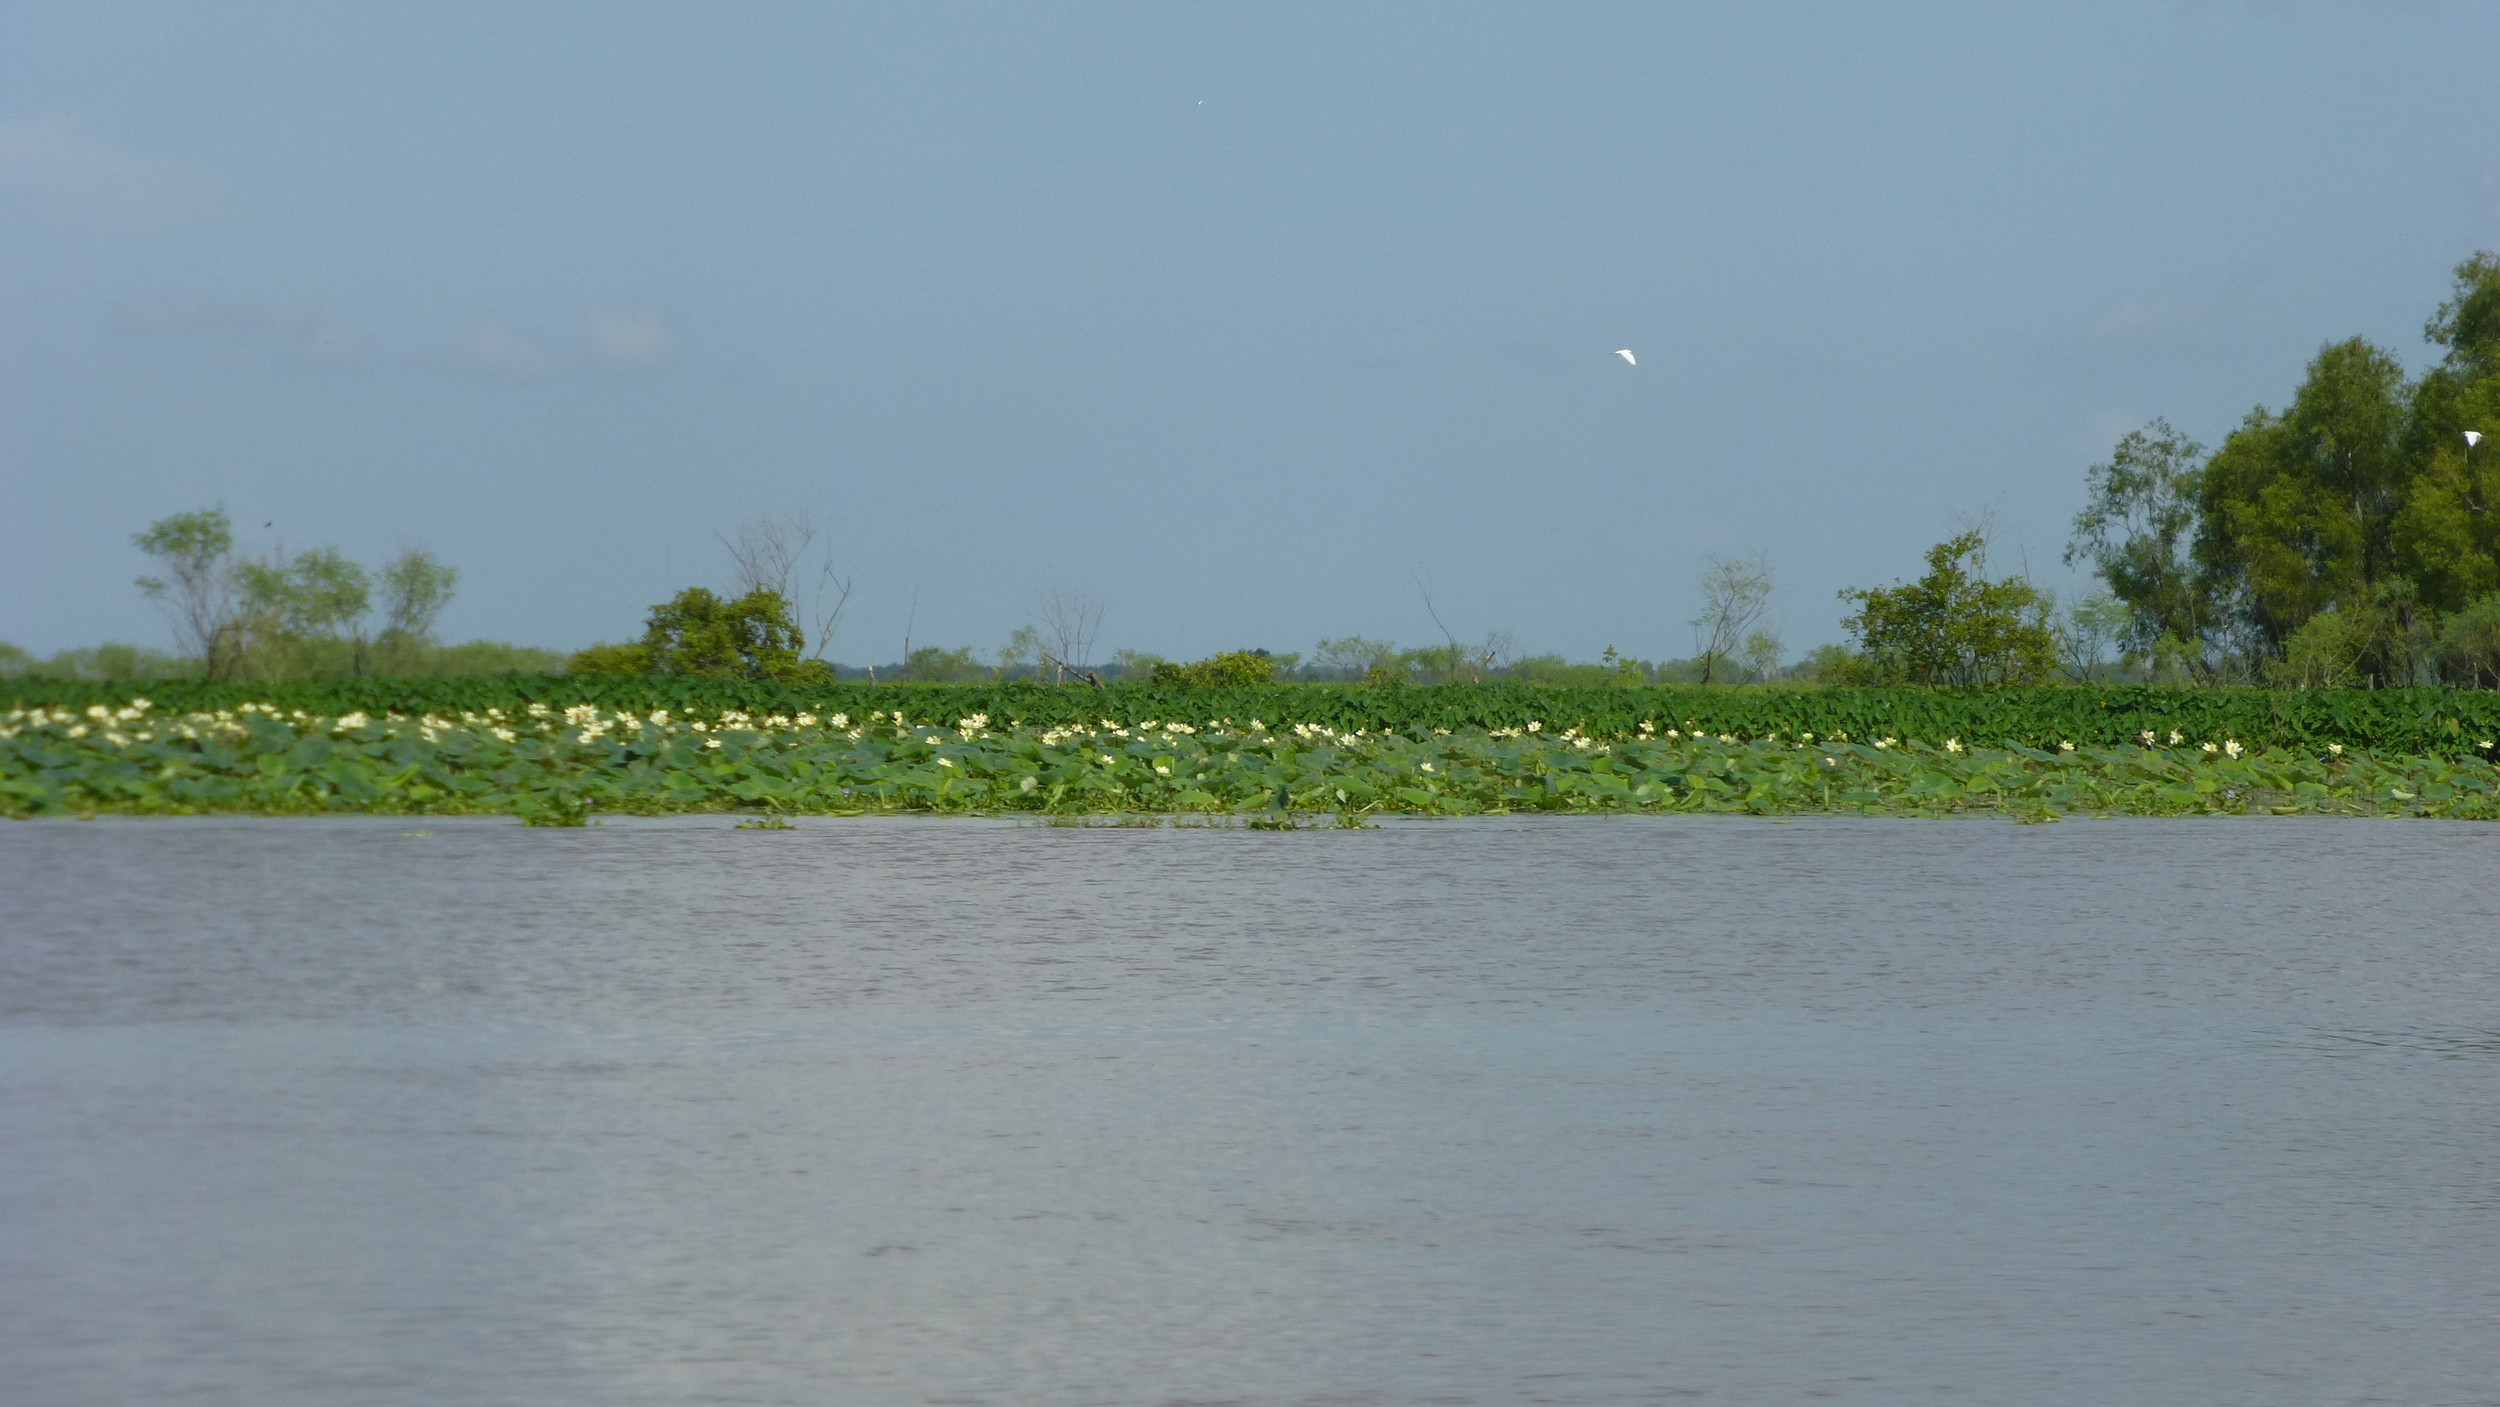 Lotuses blooming on Mike Island, part of Wax Lake Delta.